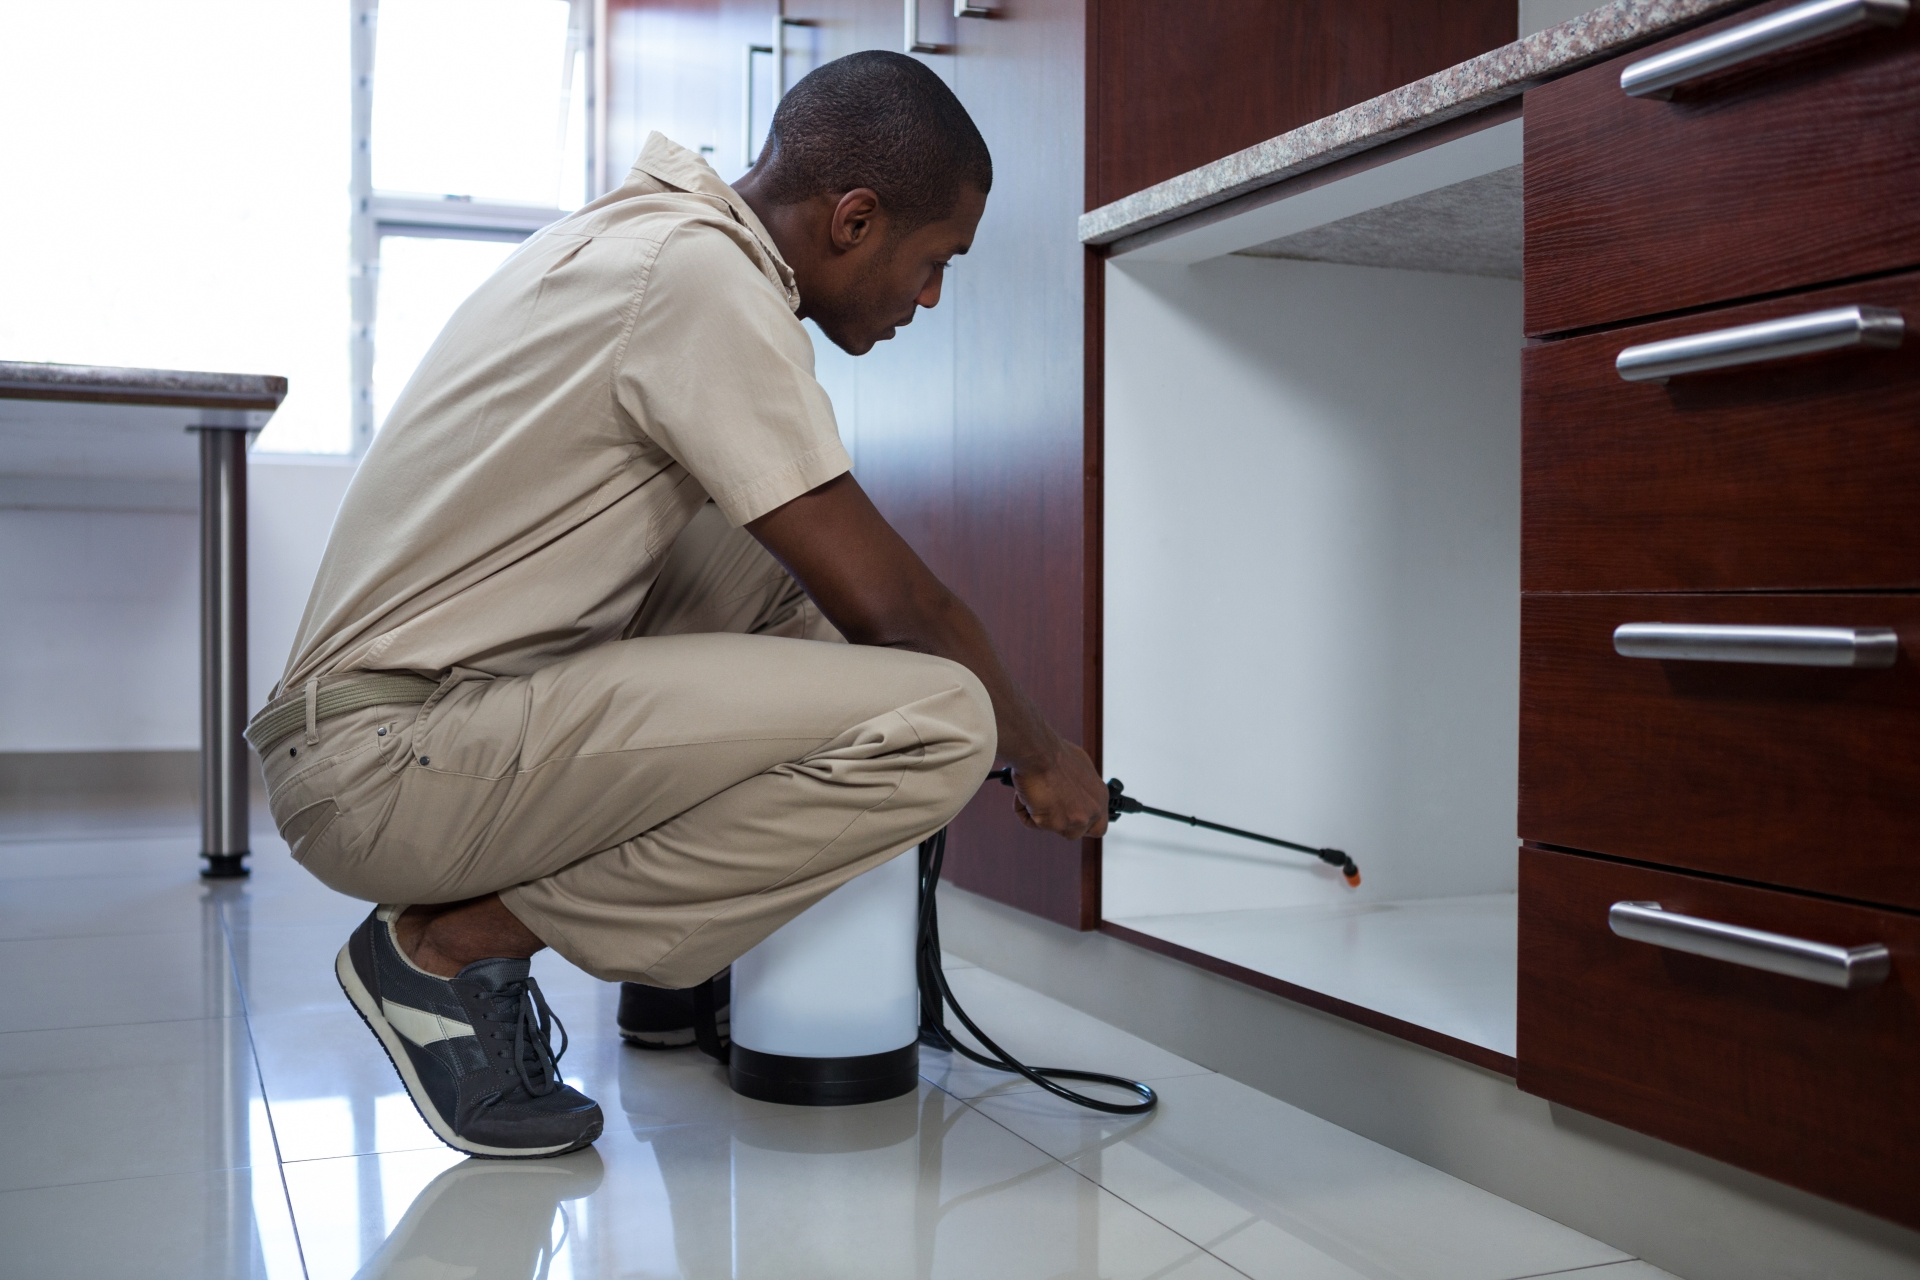 Home Pest Control, Pest Control in Camberwell, SE5. Call Now 020 8166 9746